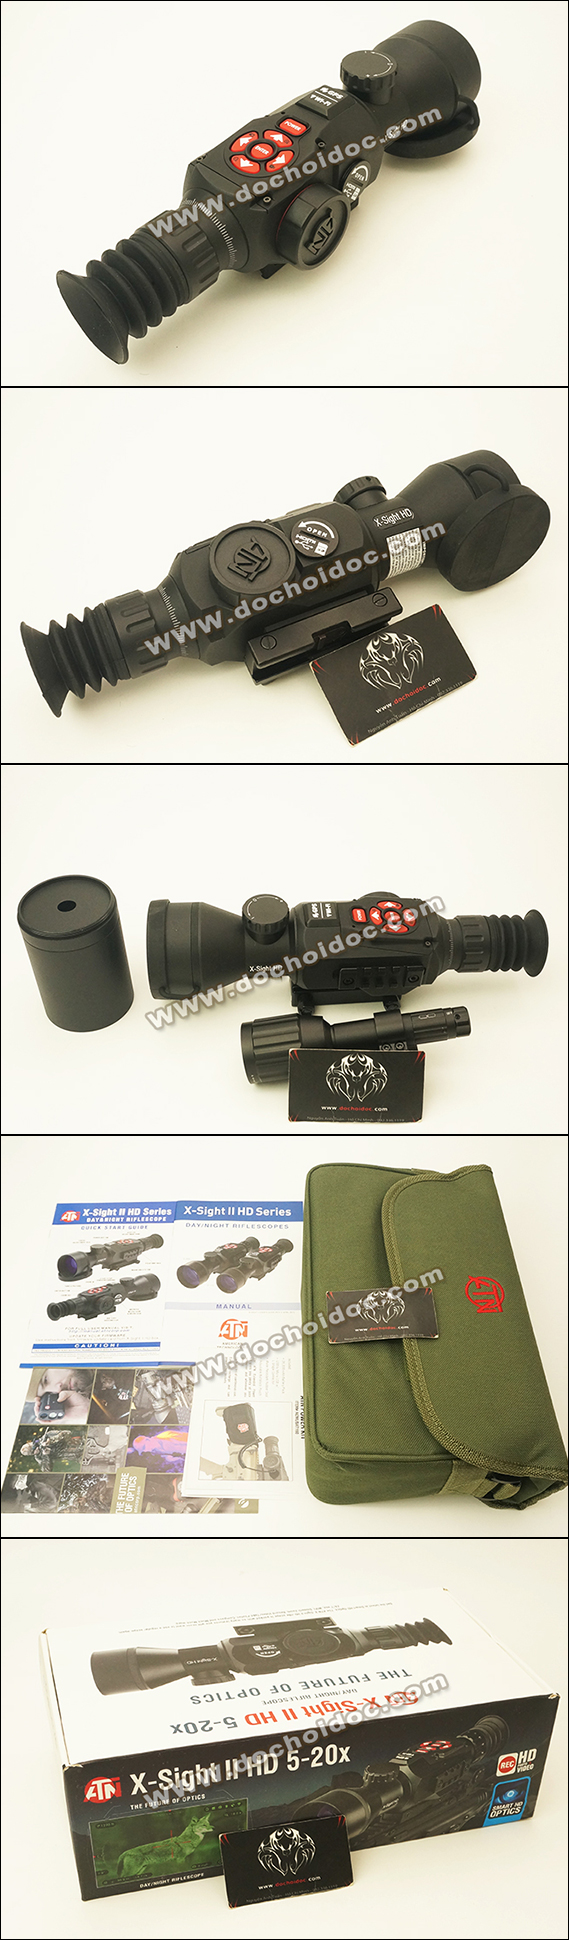 ATN-X-Sight-II-HD-5-20x C